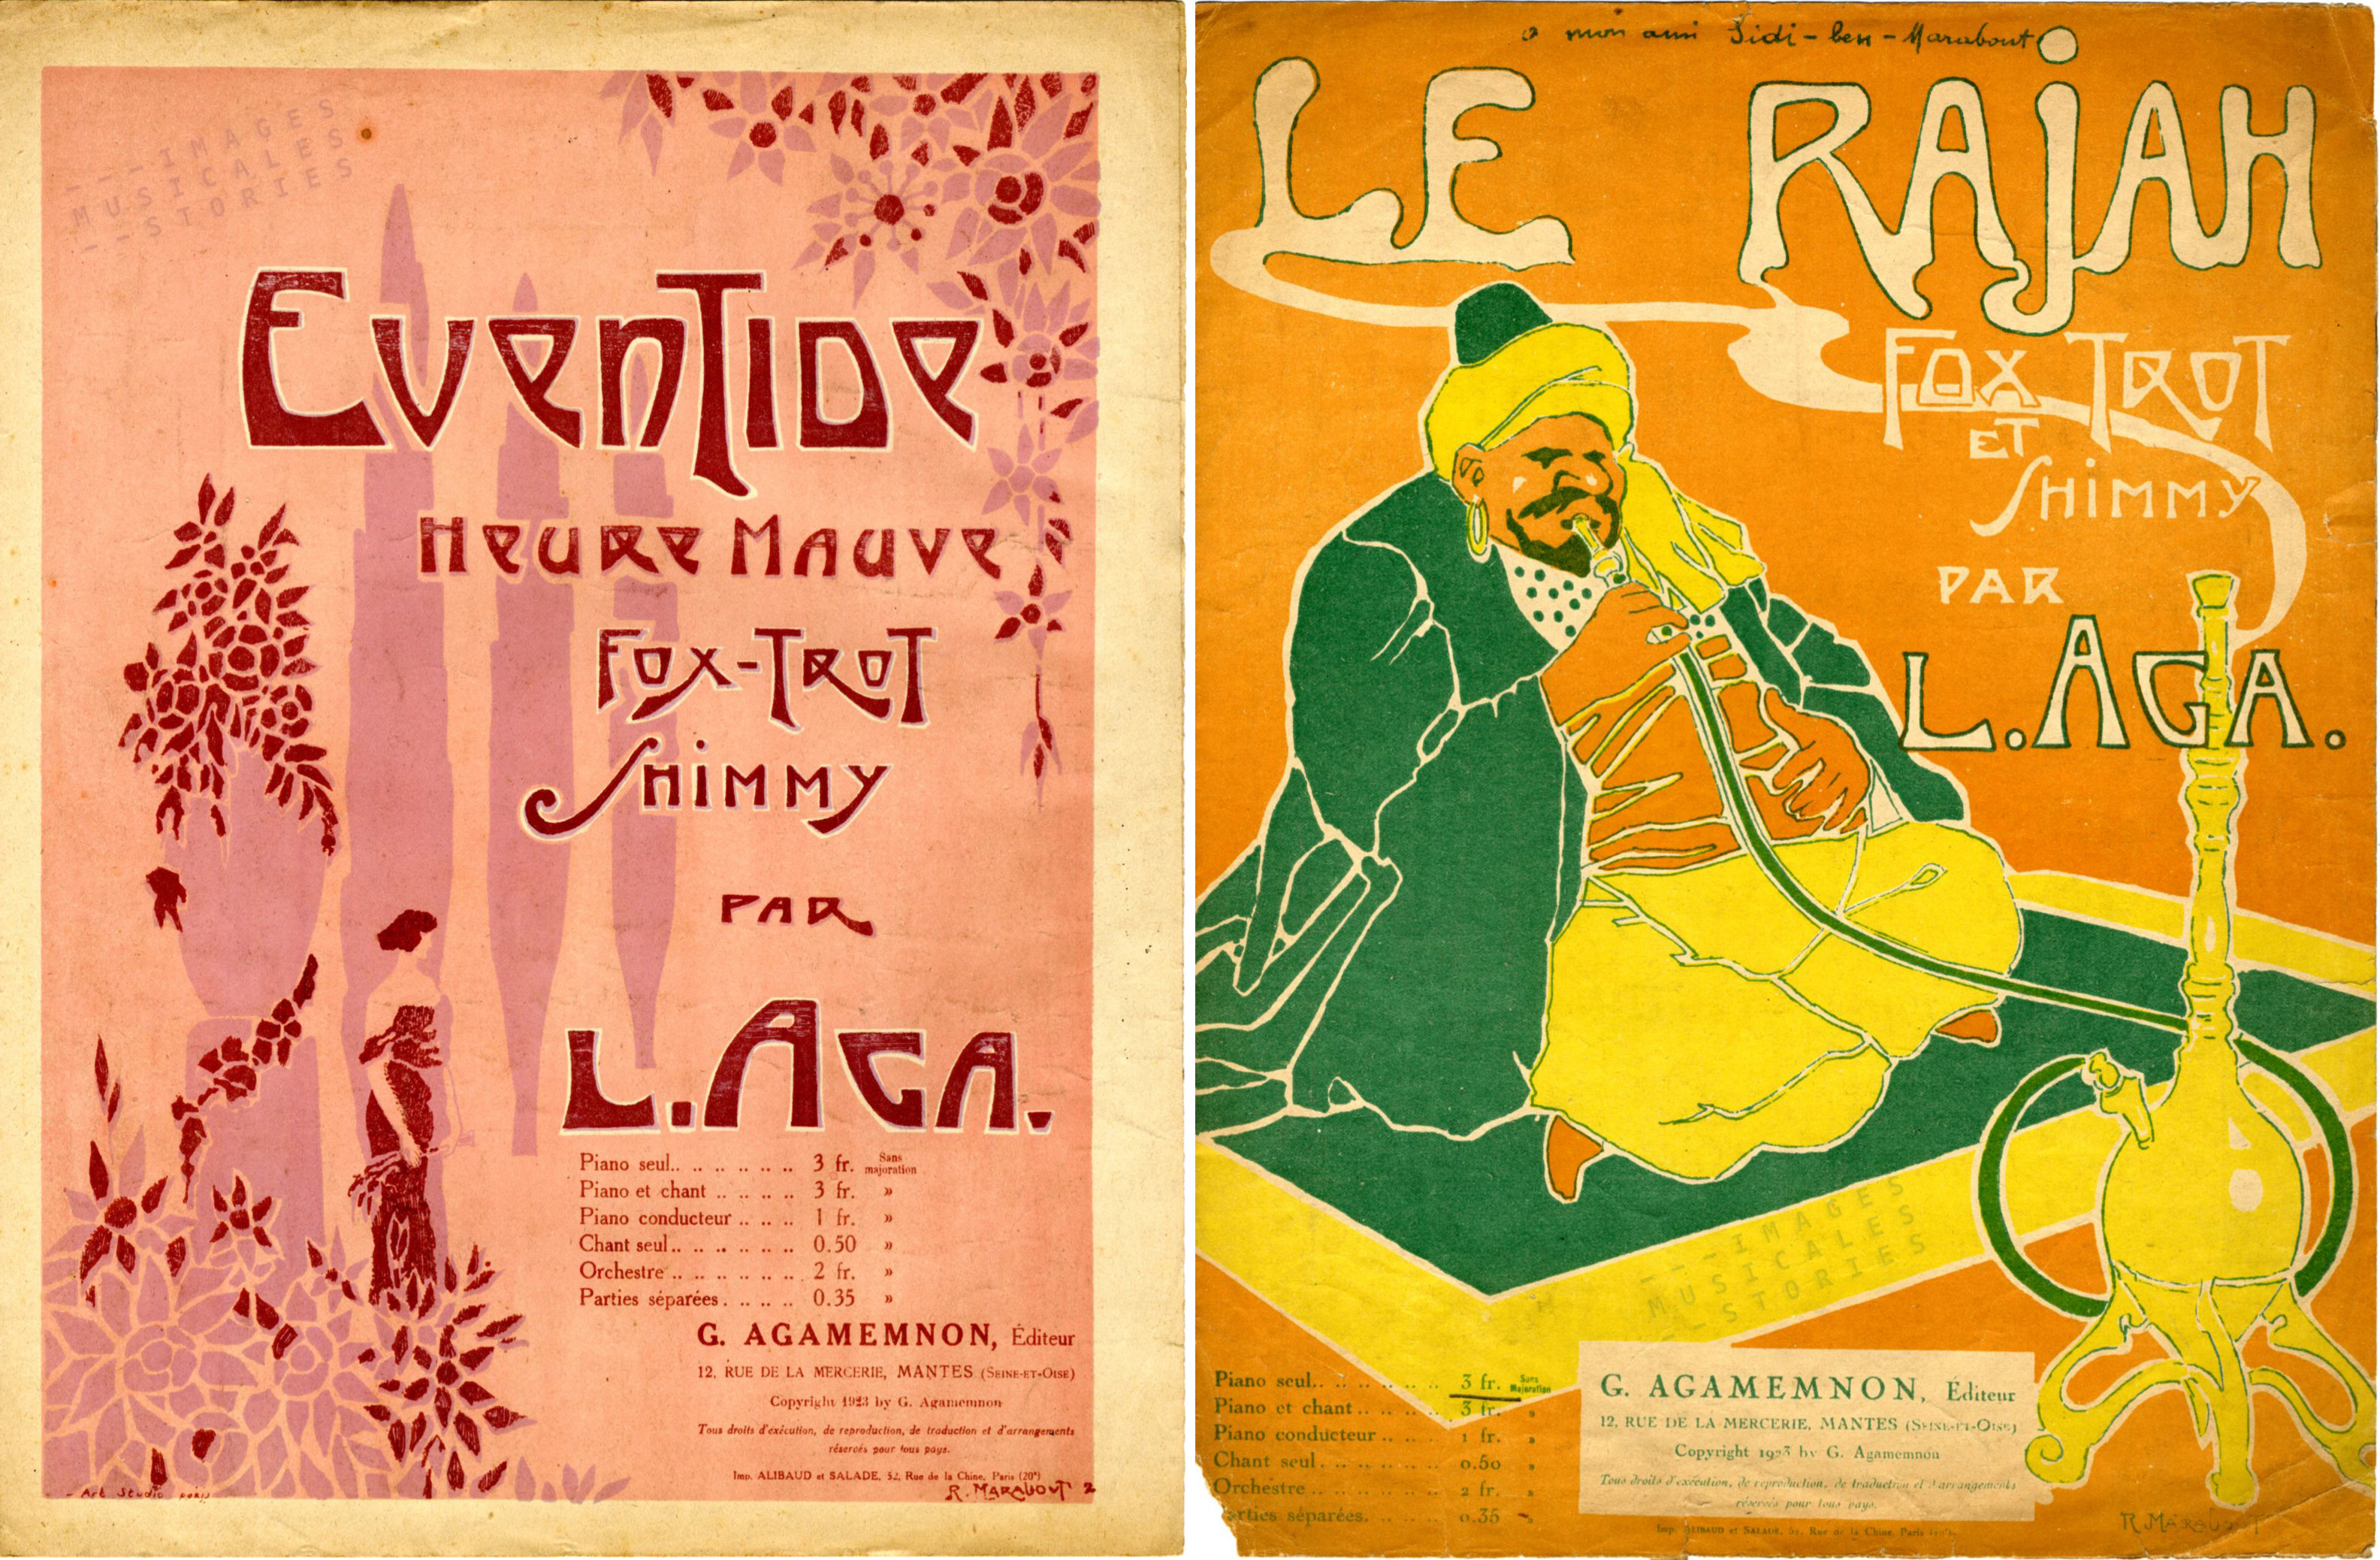 'Eventide' and 'Le Rajah' sheet music covers (partition de musique)